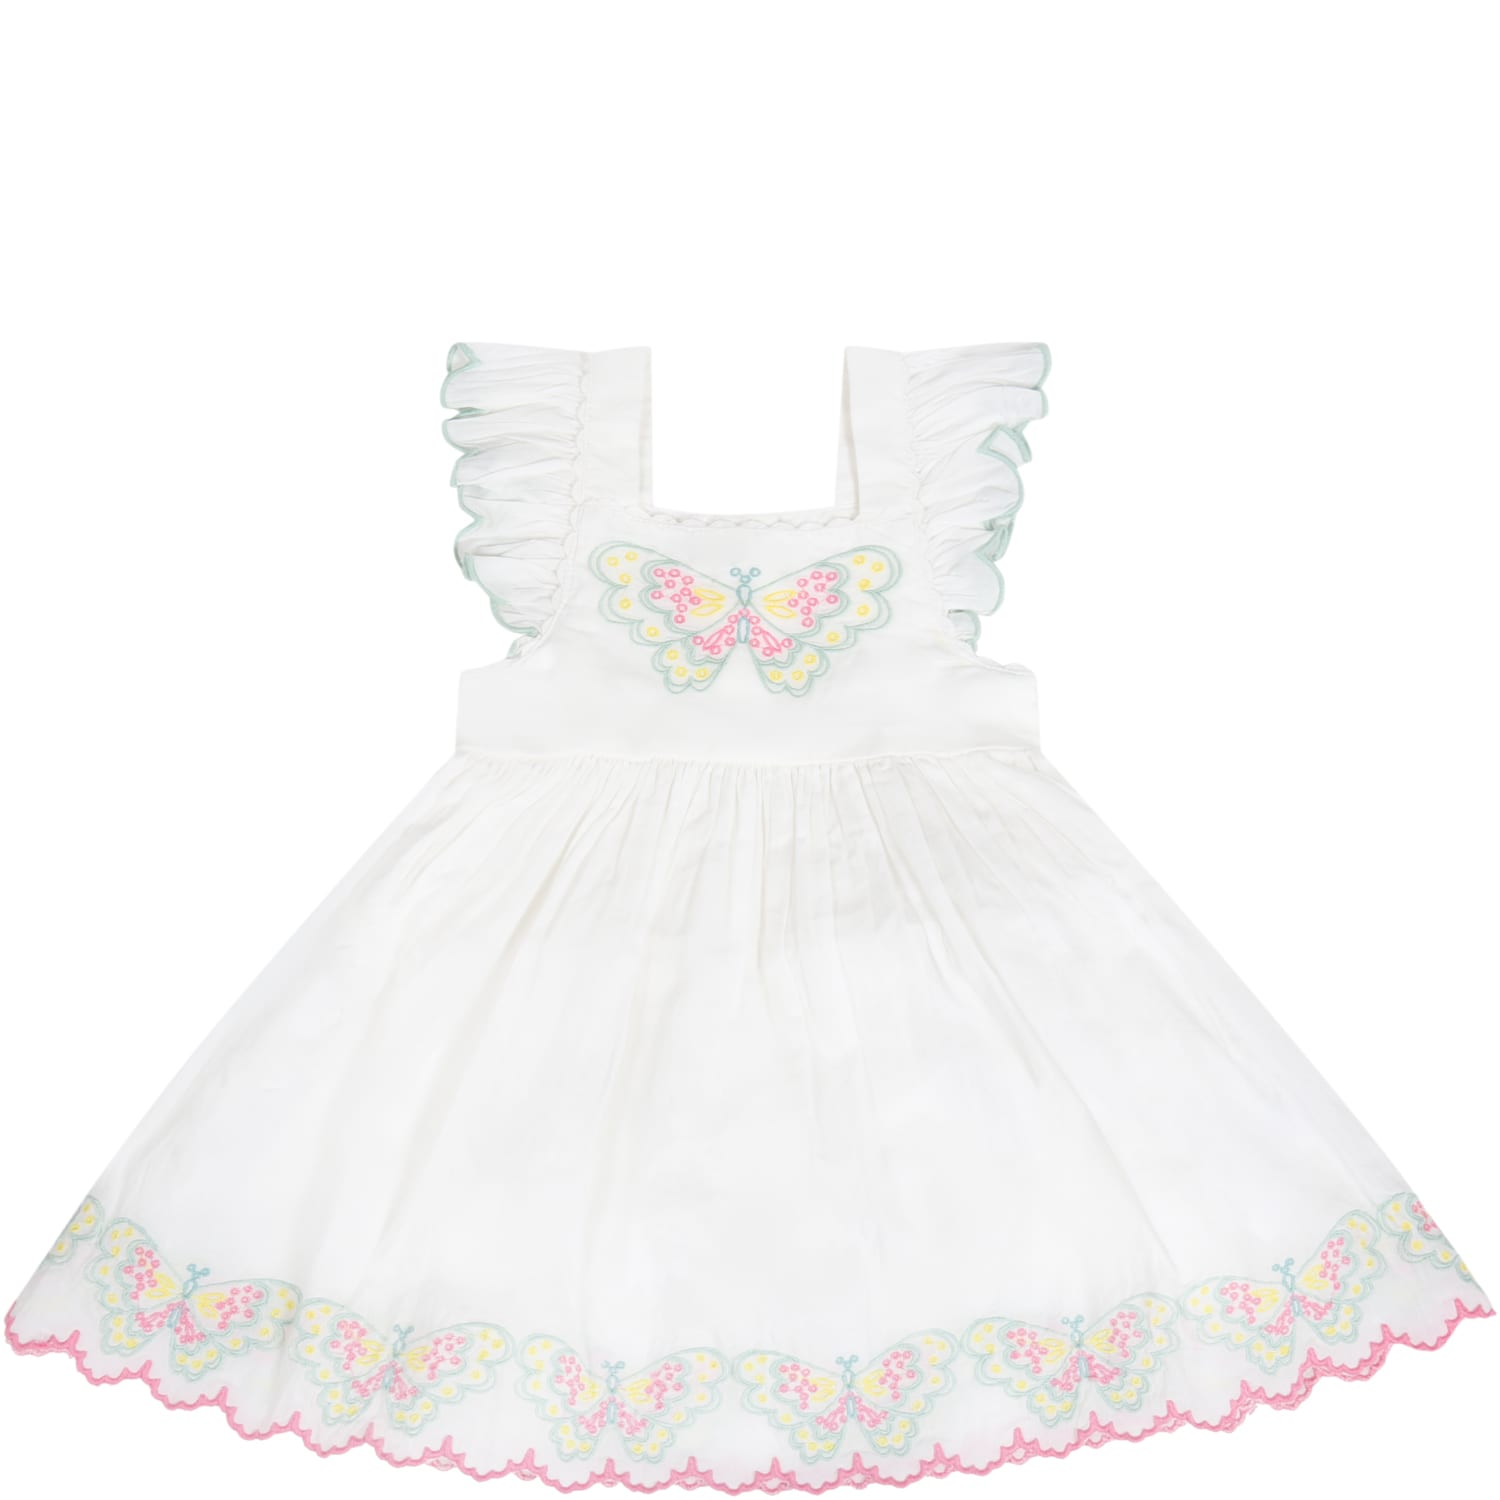 Stella Mccartney Cottons WHITE DRESS FOR BABYGIRL WITH BUTTERFLIES